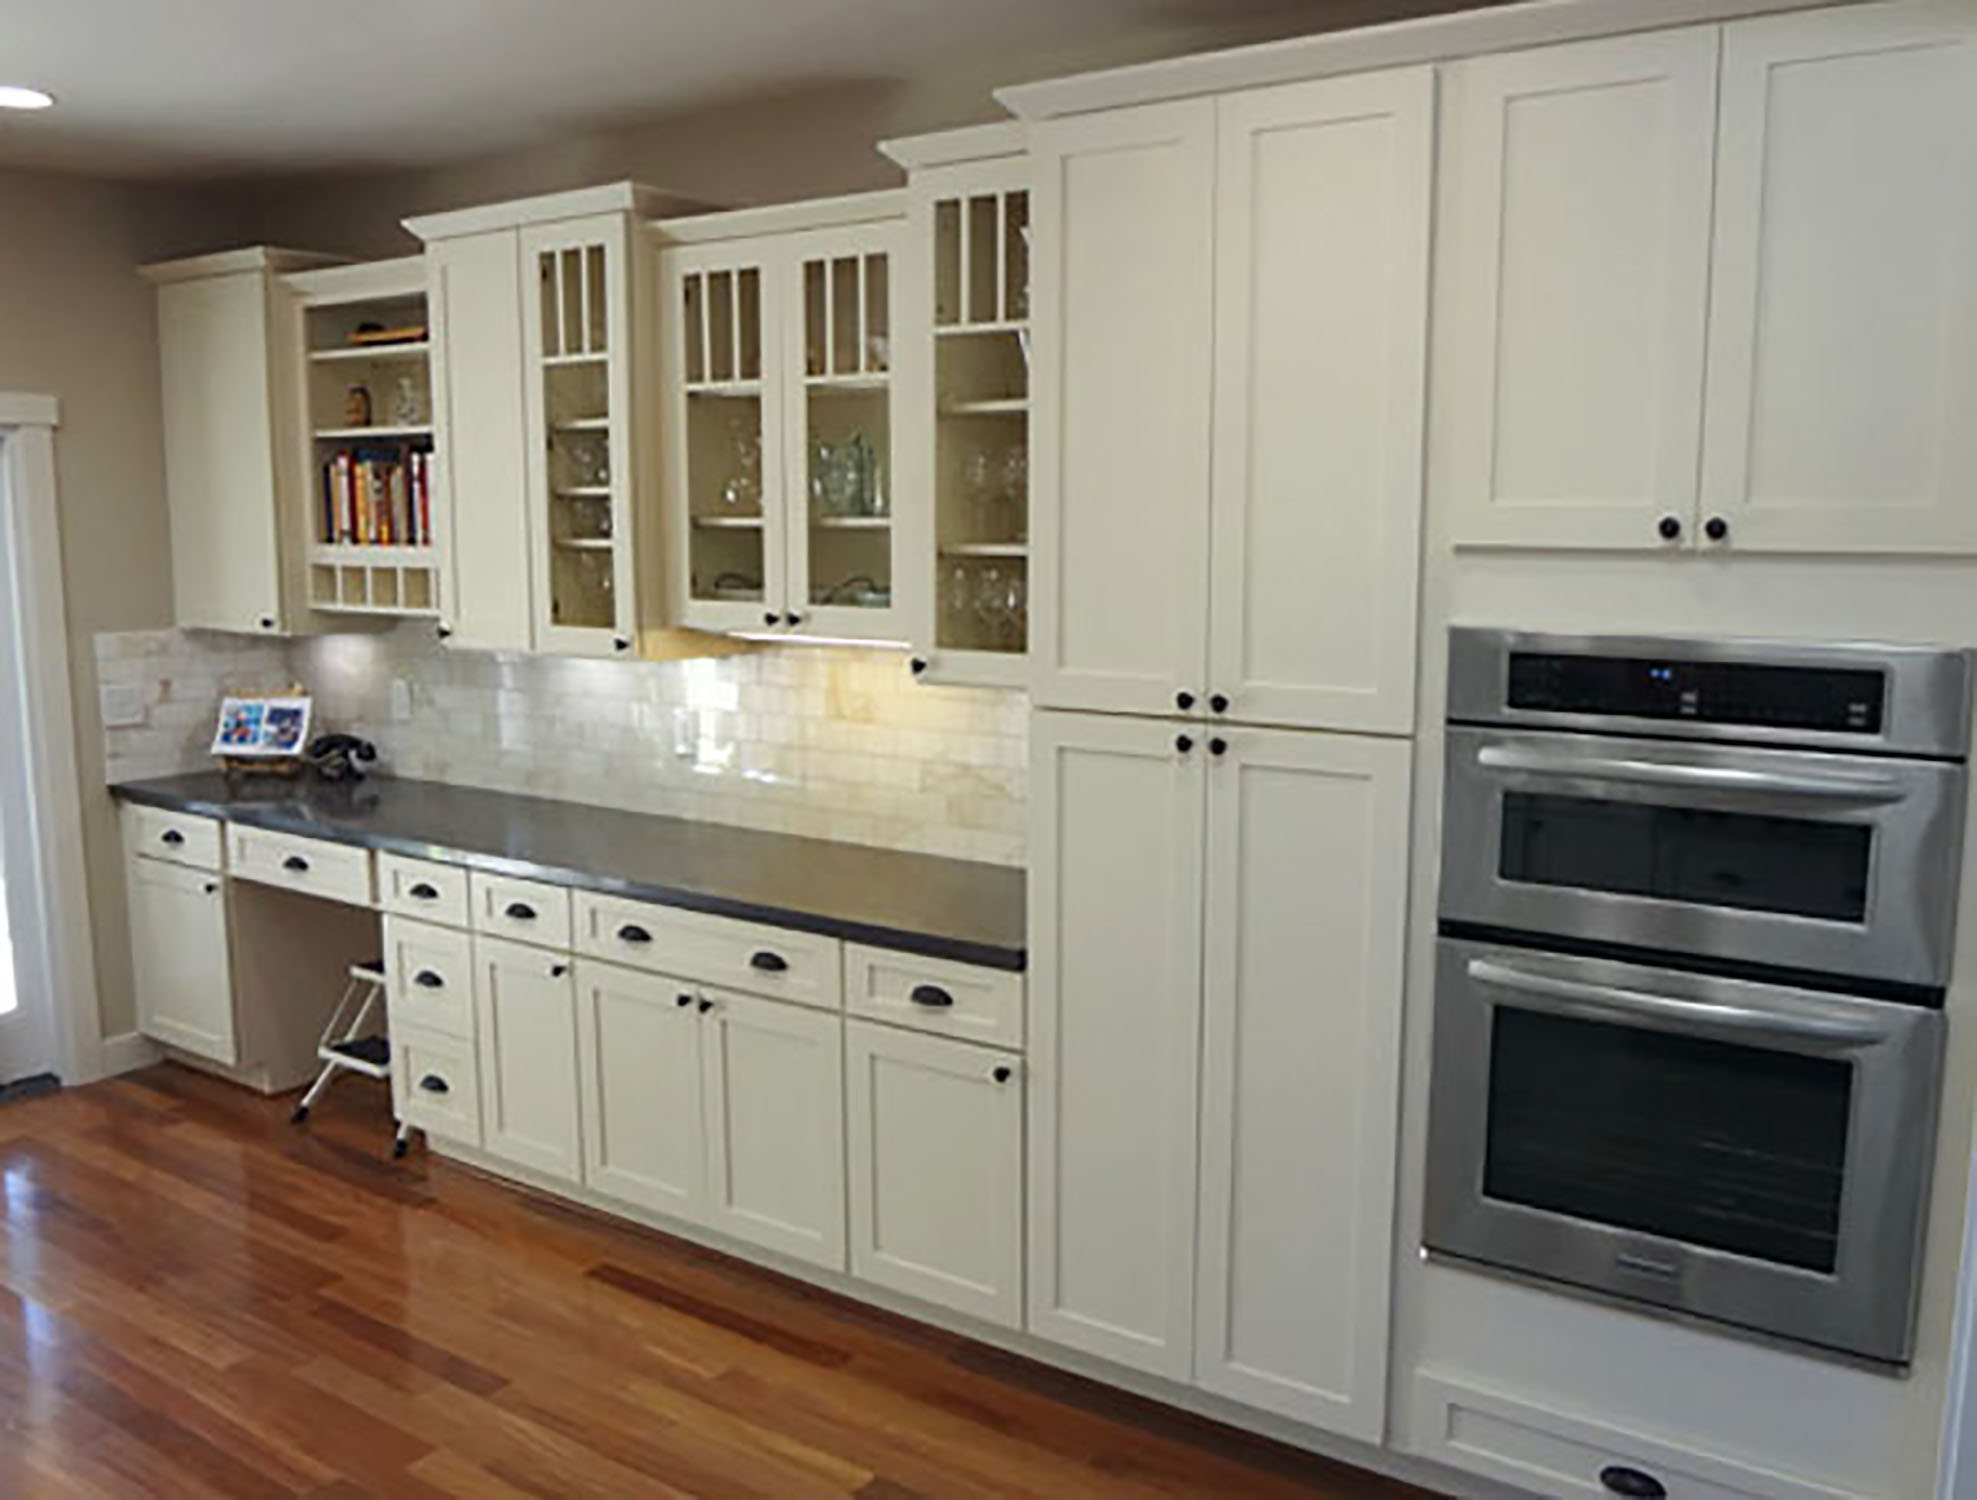 Kitchen Cabinets Pictures Gallery Customer Photos Acmecabinetdoors